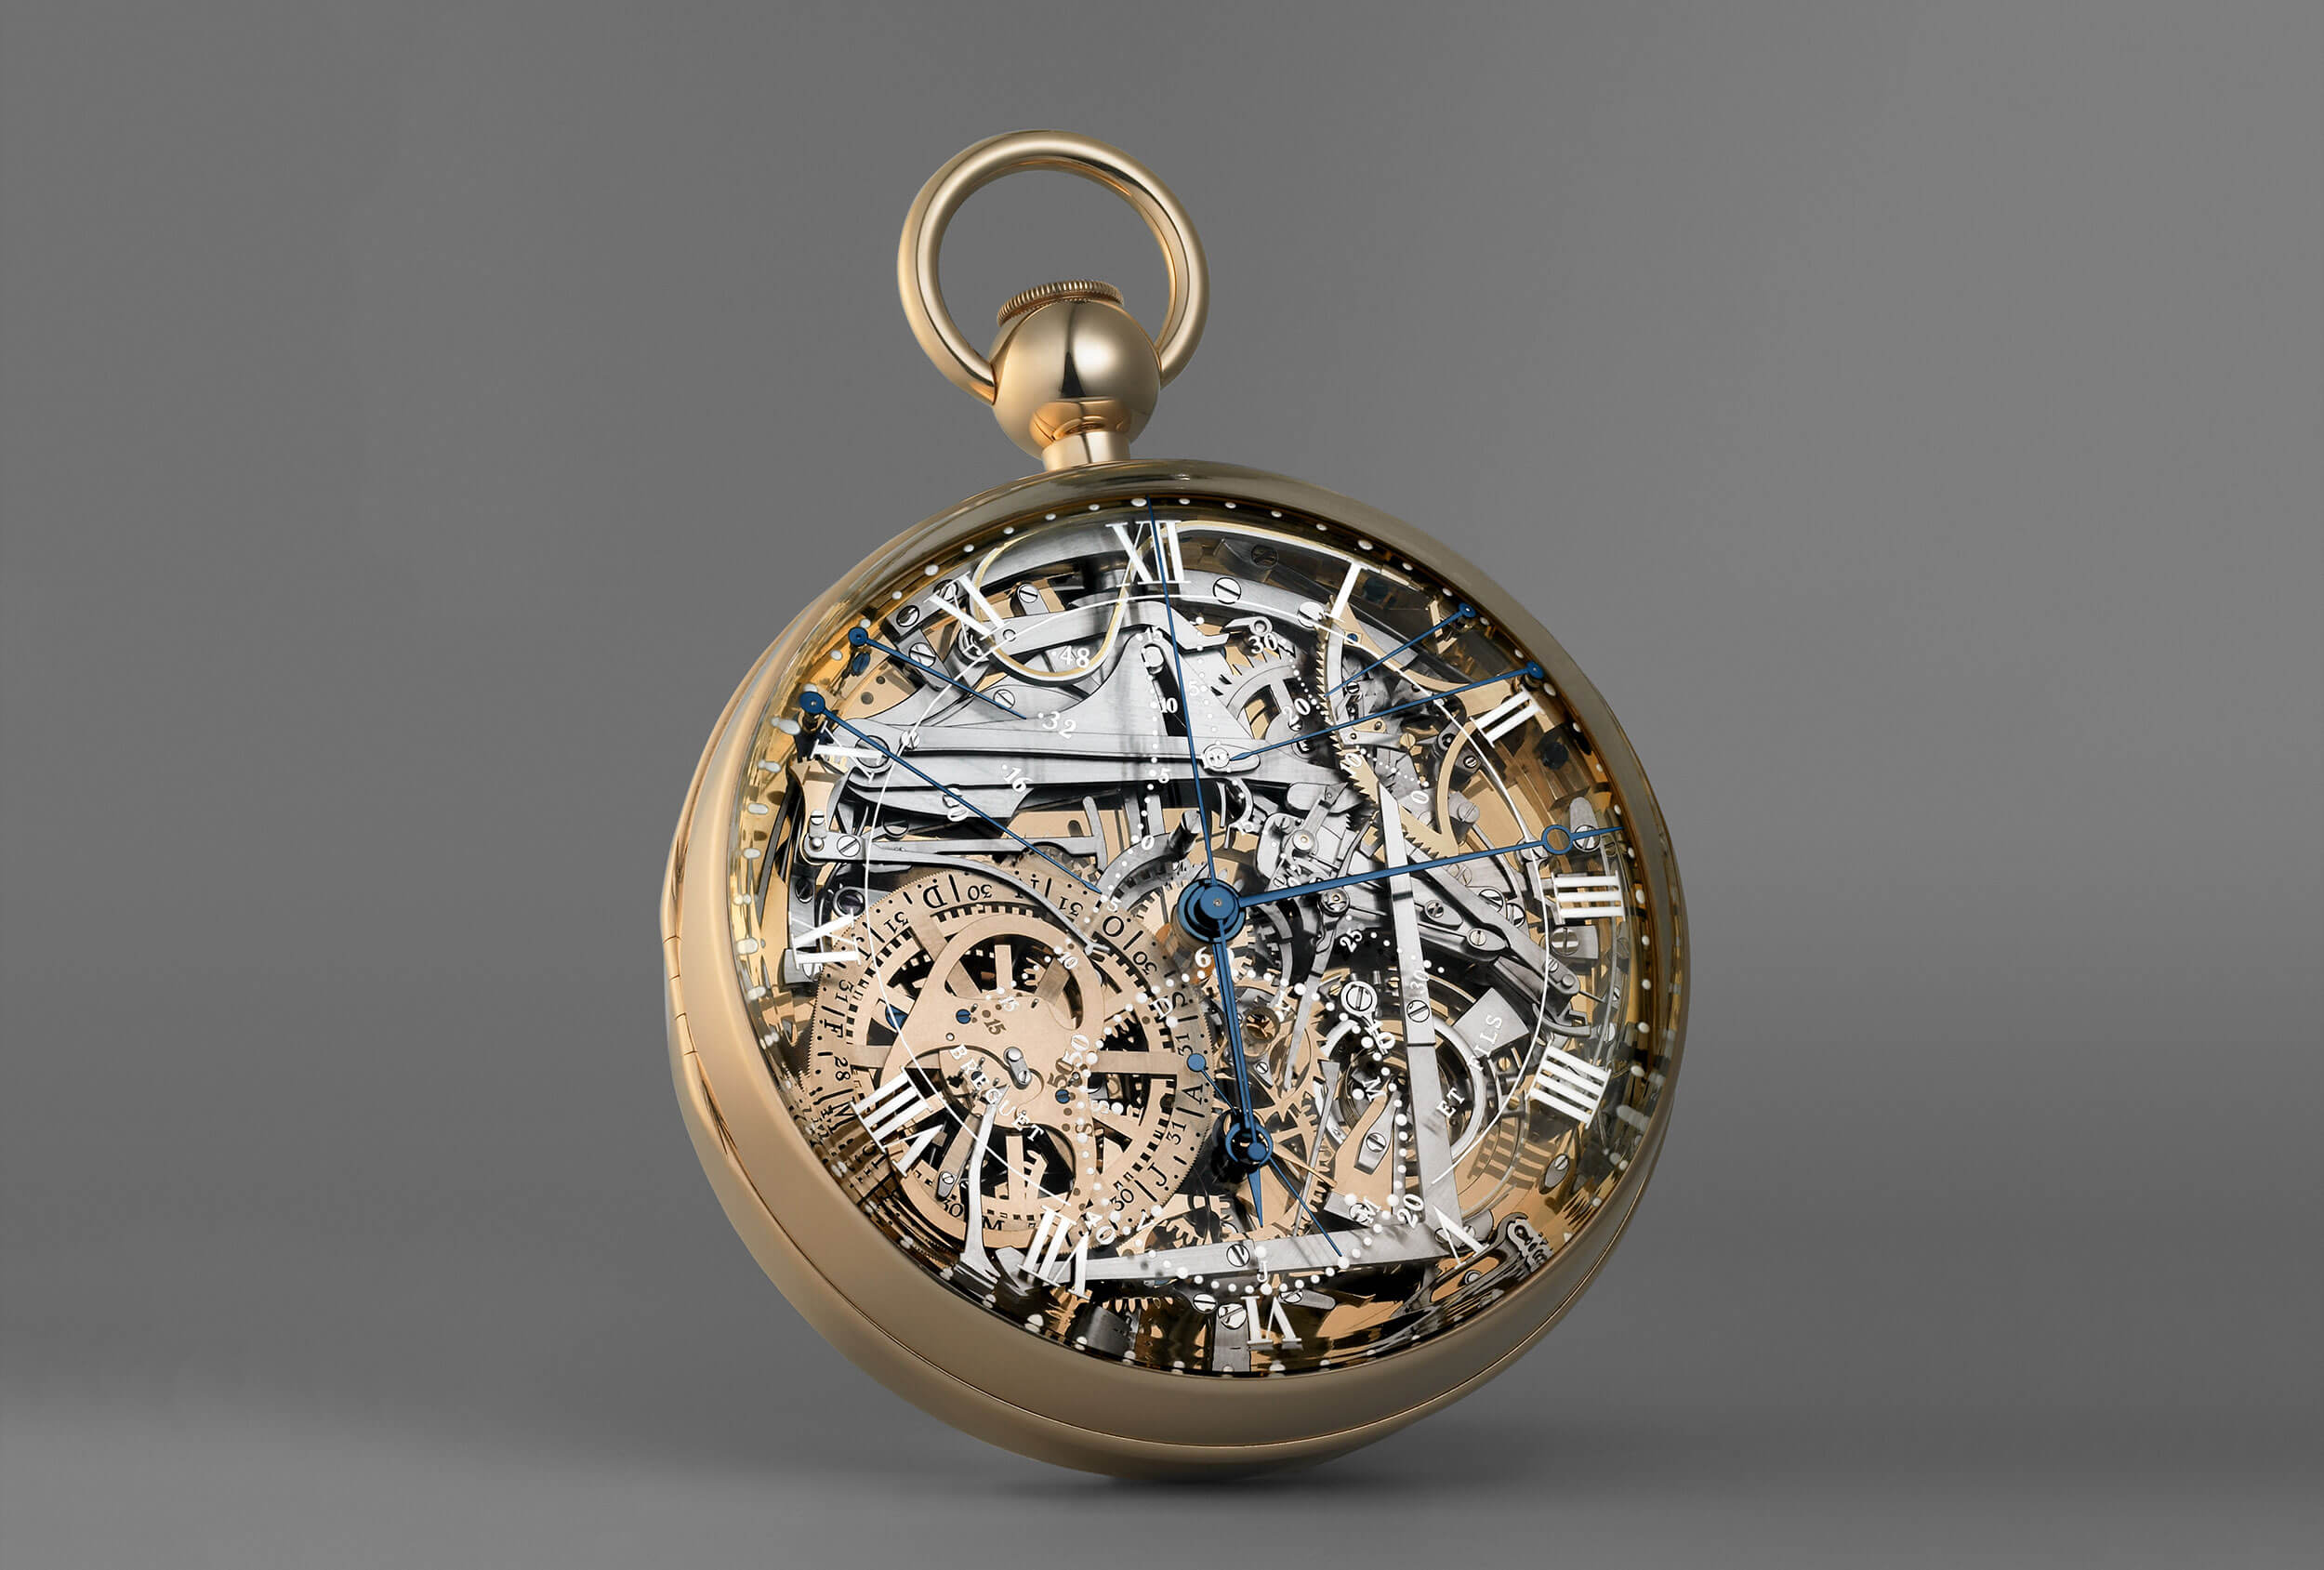 top-15-most-expensive-watches-in-the-world_herstylecode-2